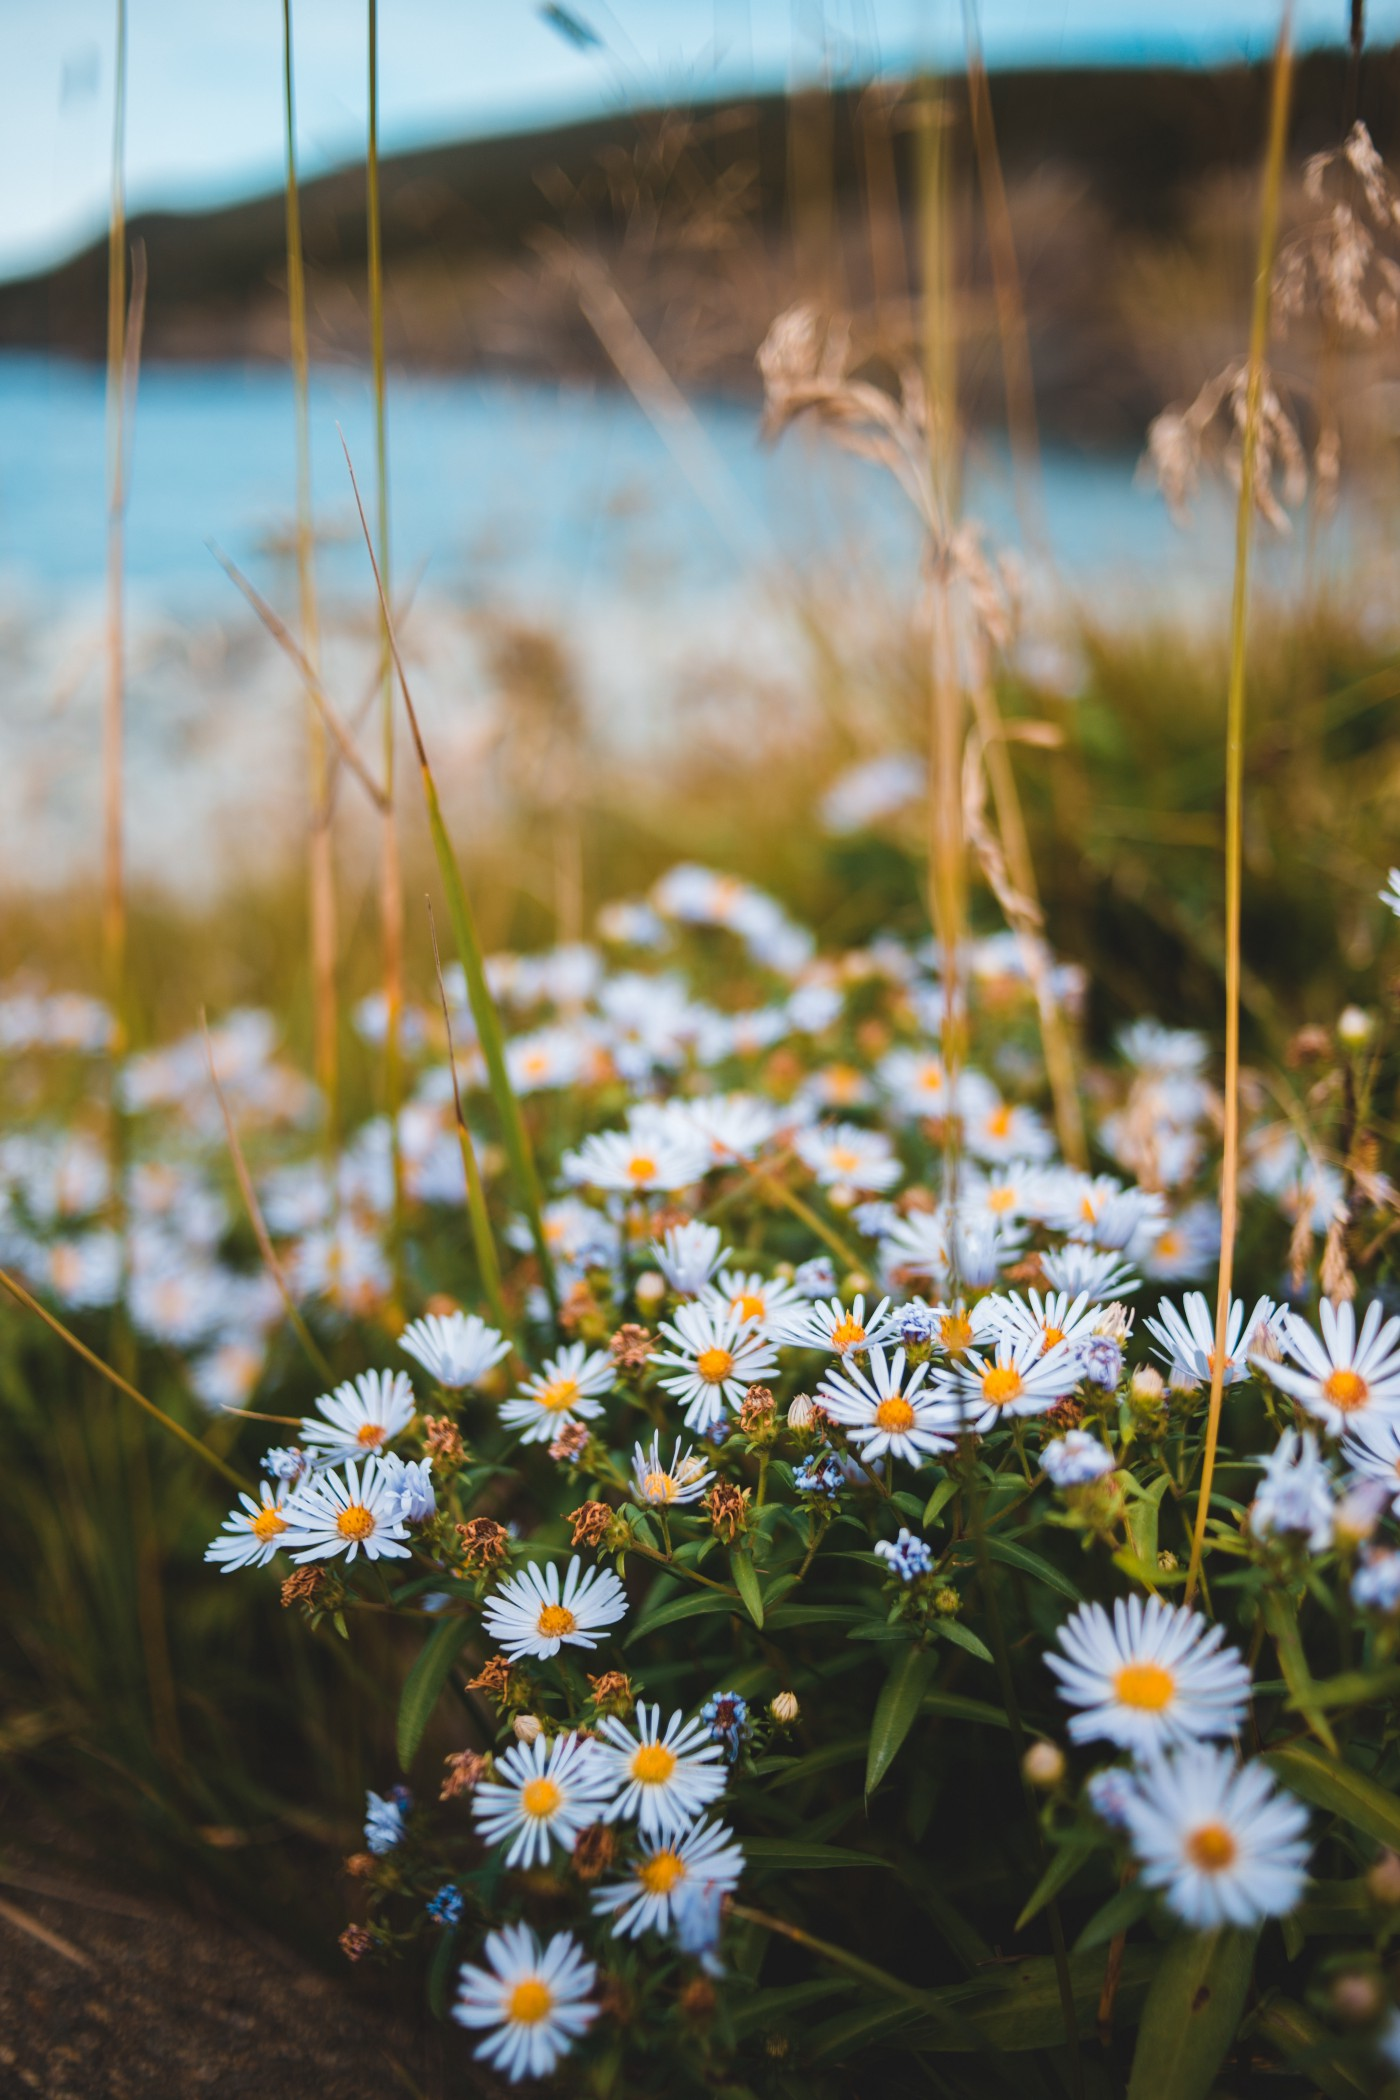 Field of wild little daisies, with grasses interspersed, over the ocean.